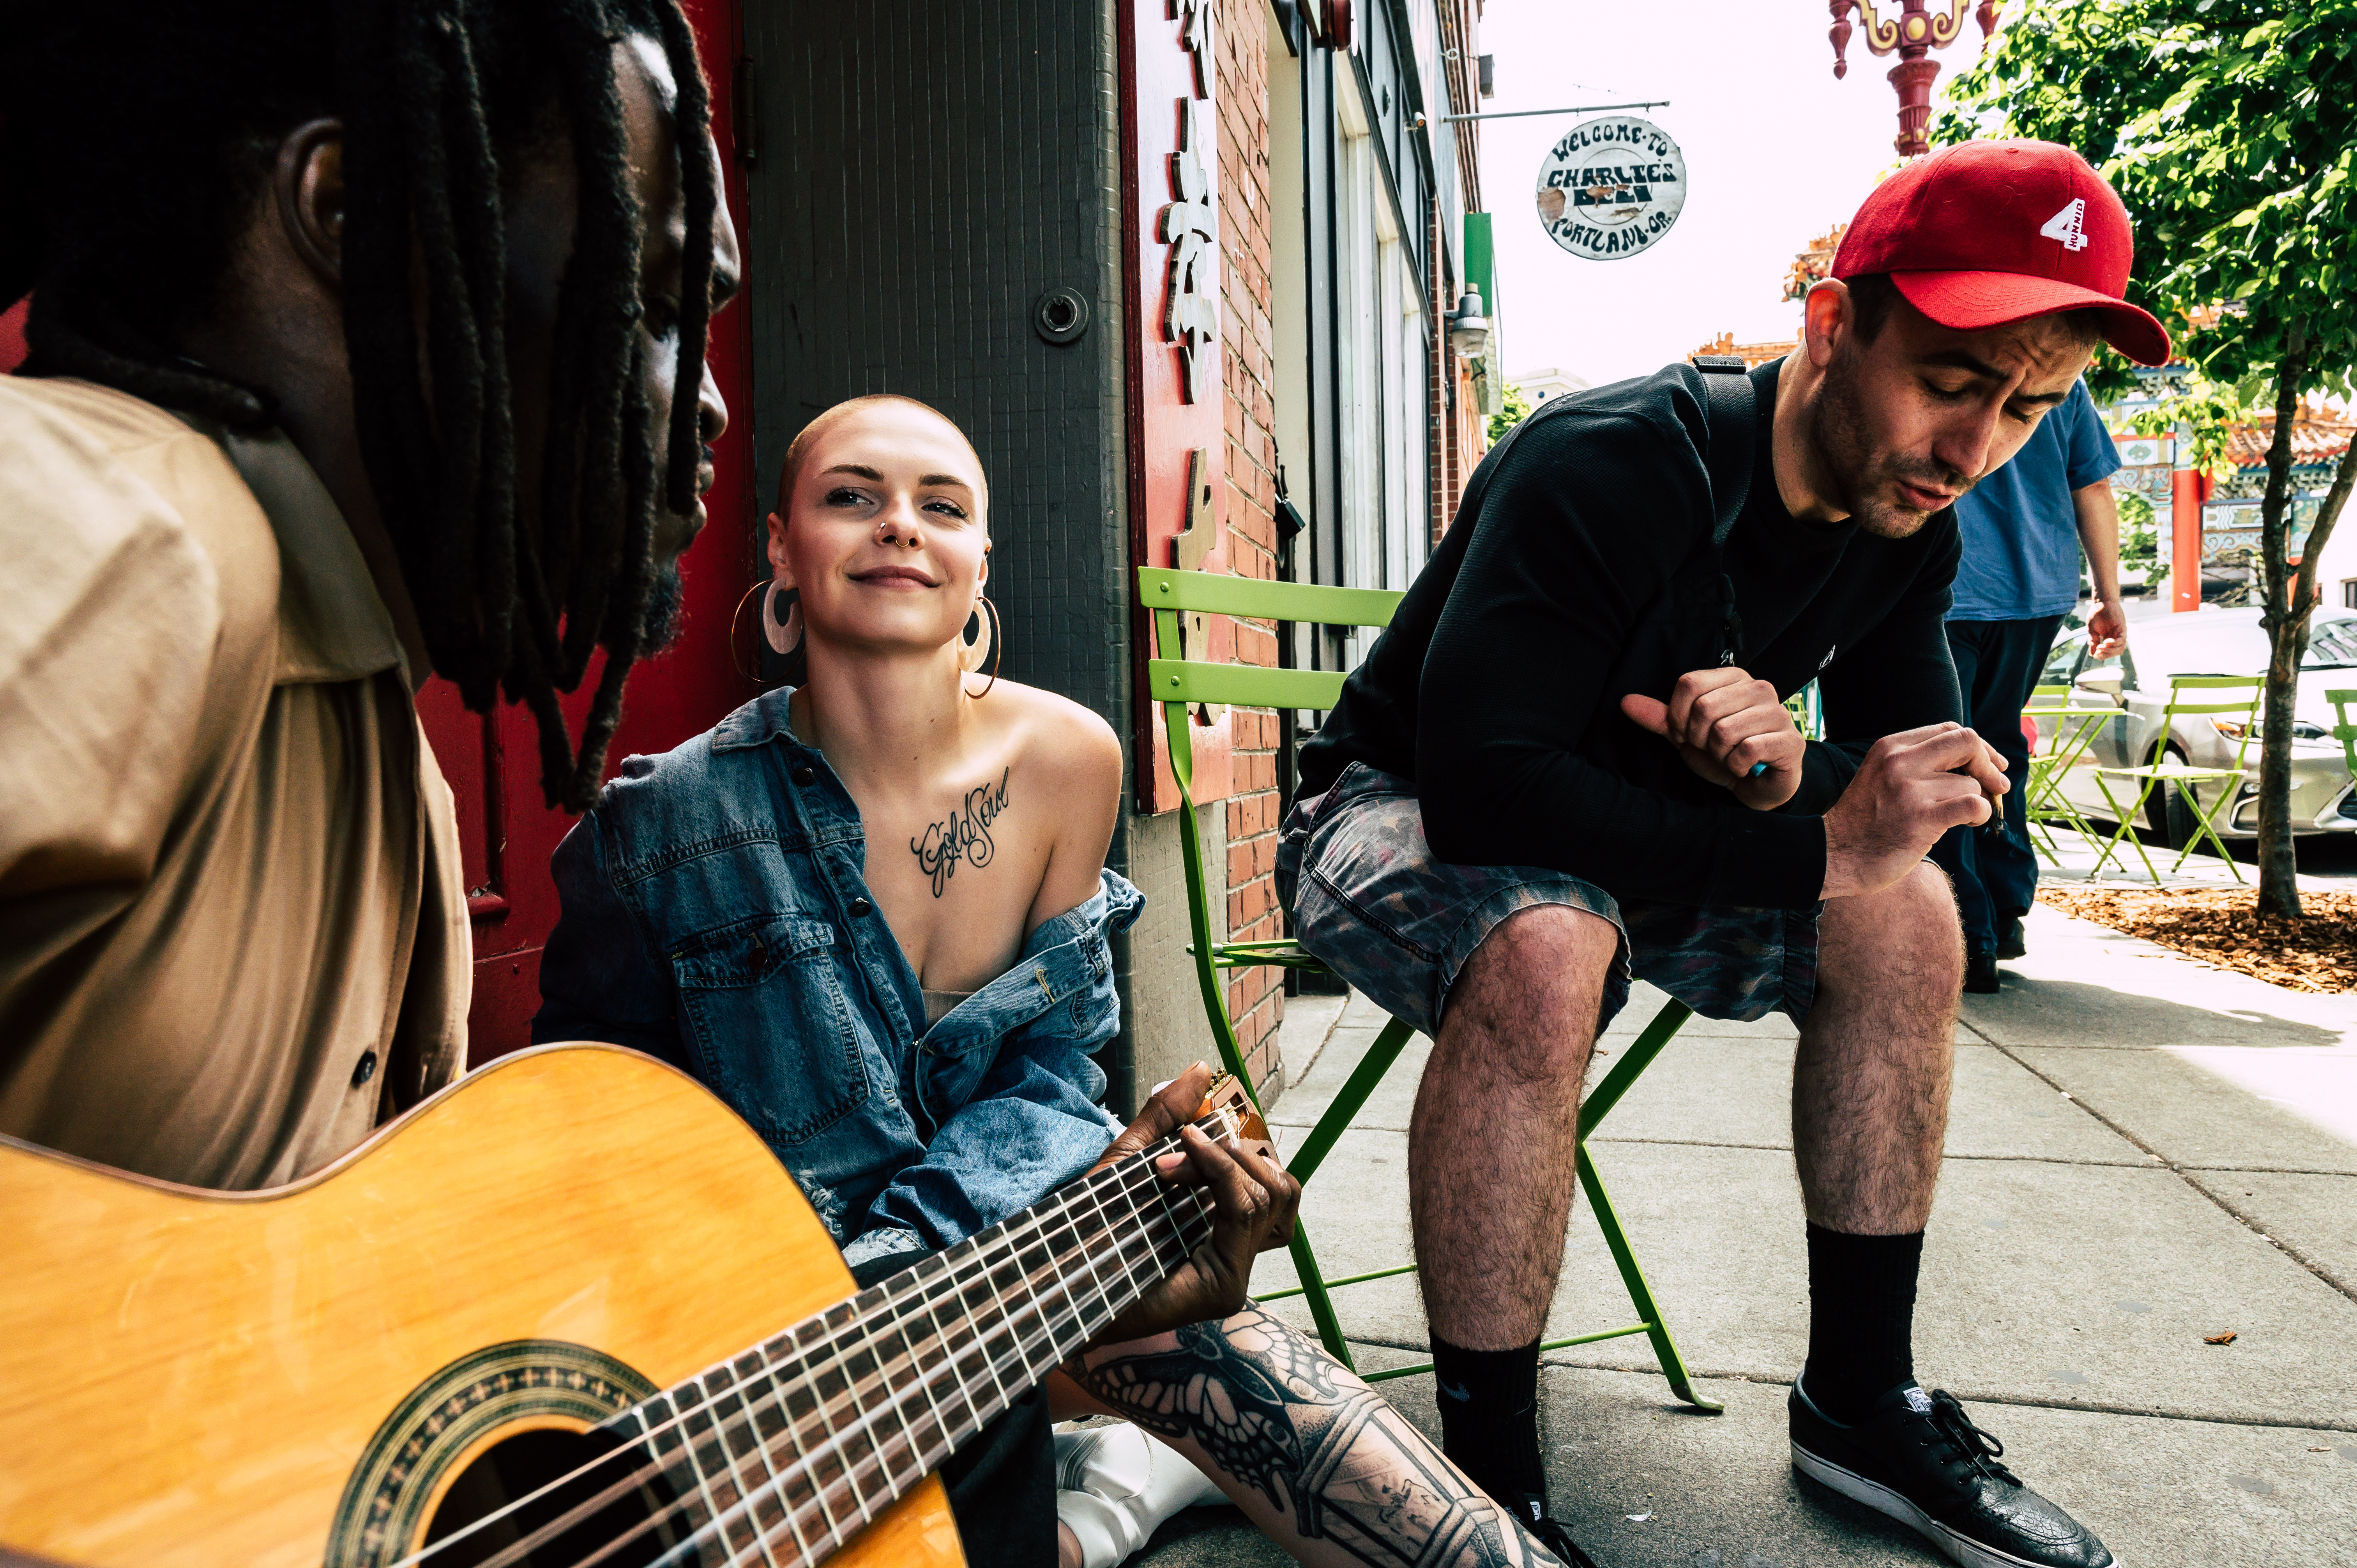 Man and Woman Sitting on Sidewalk and Playing Guitar